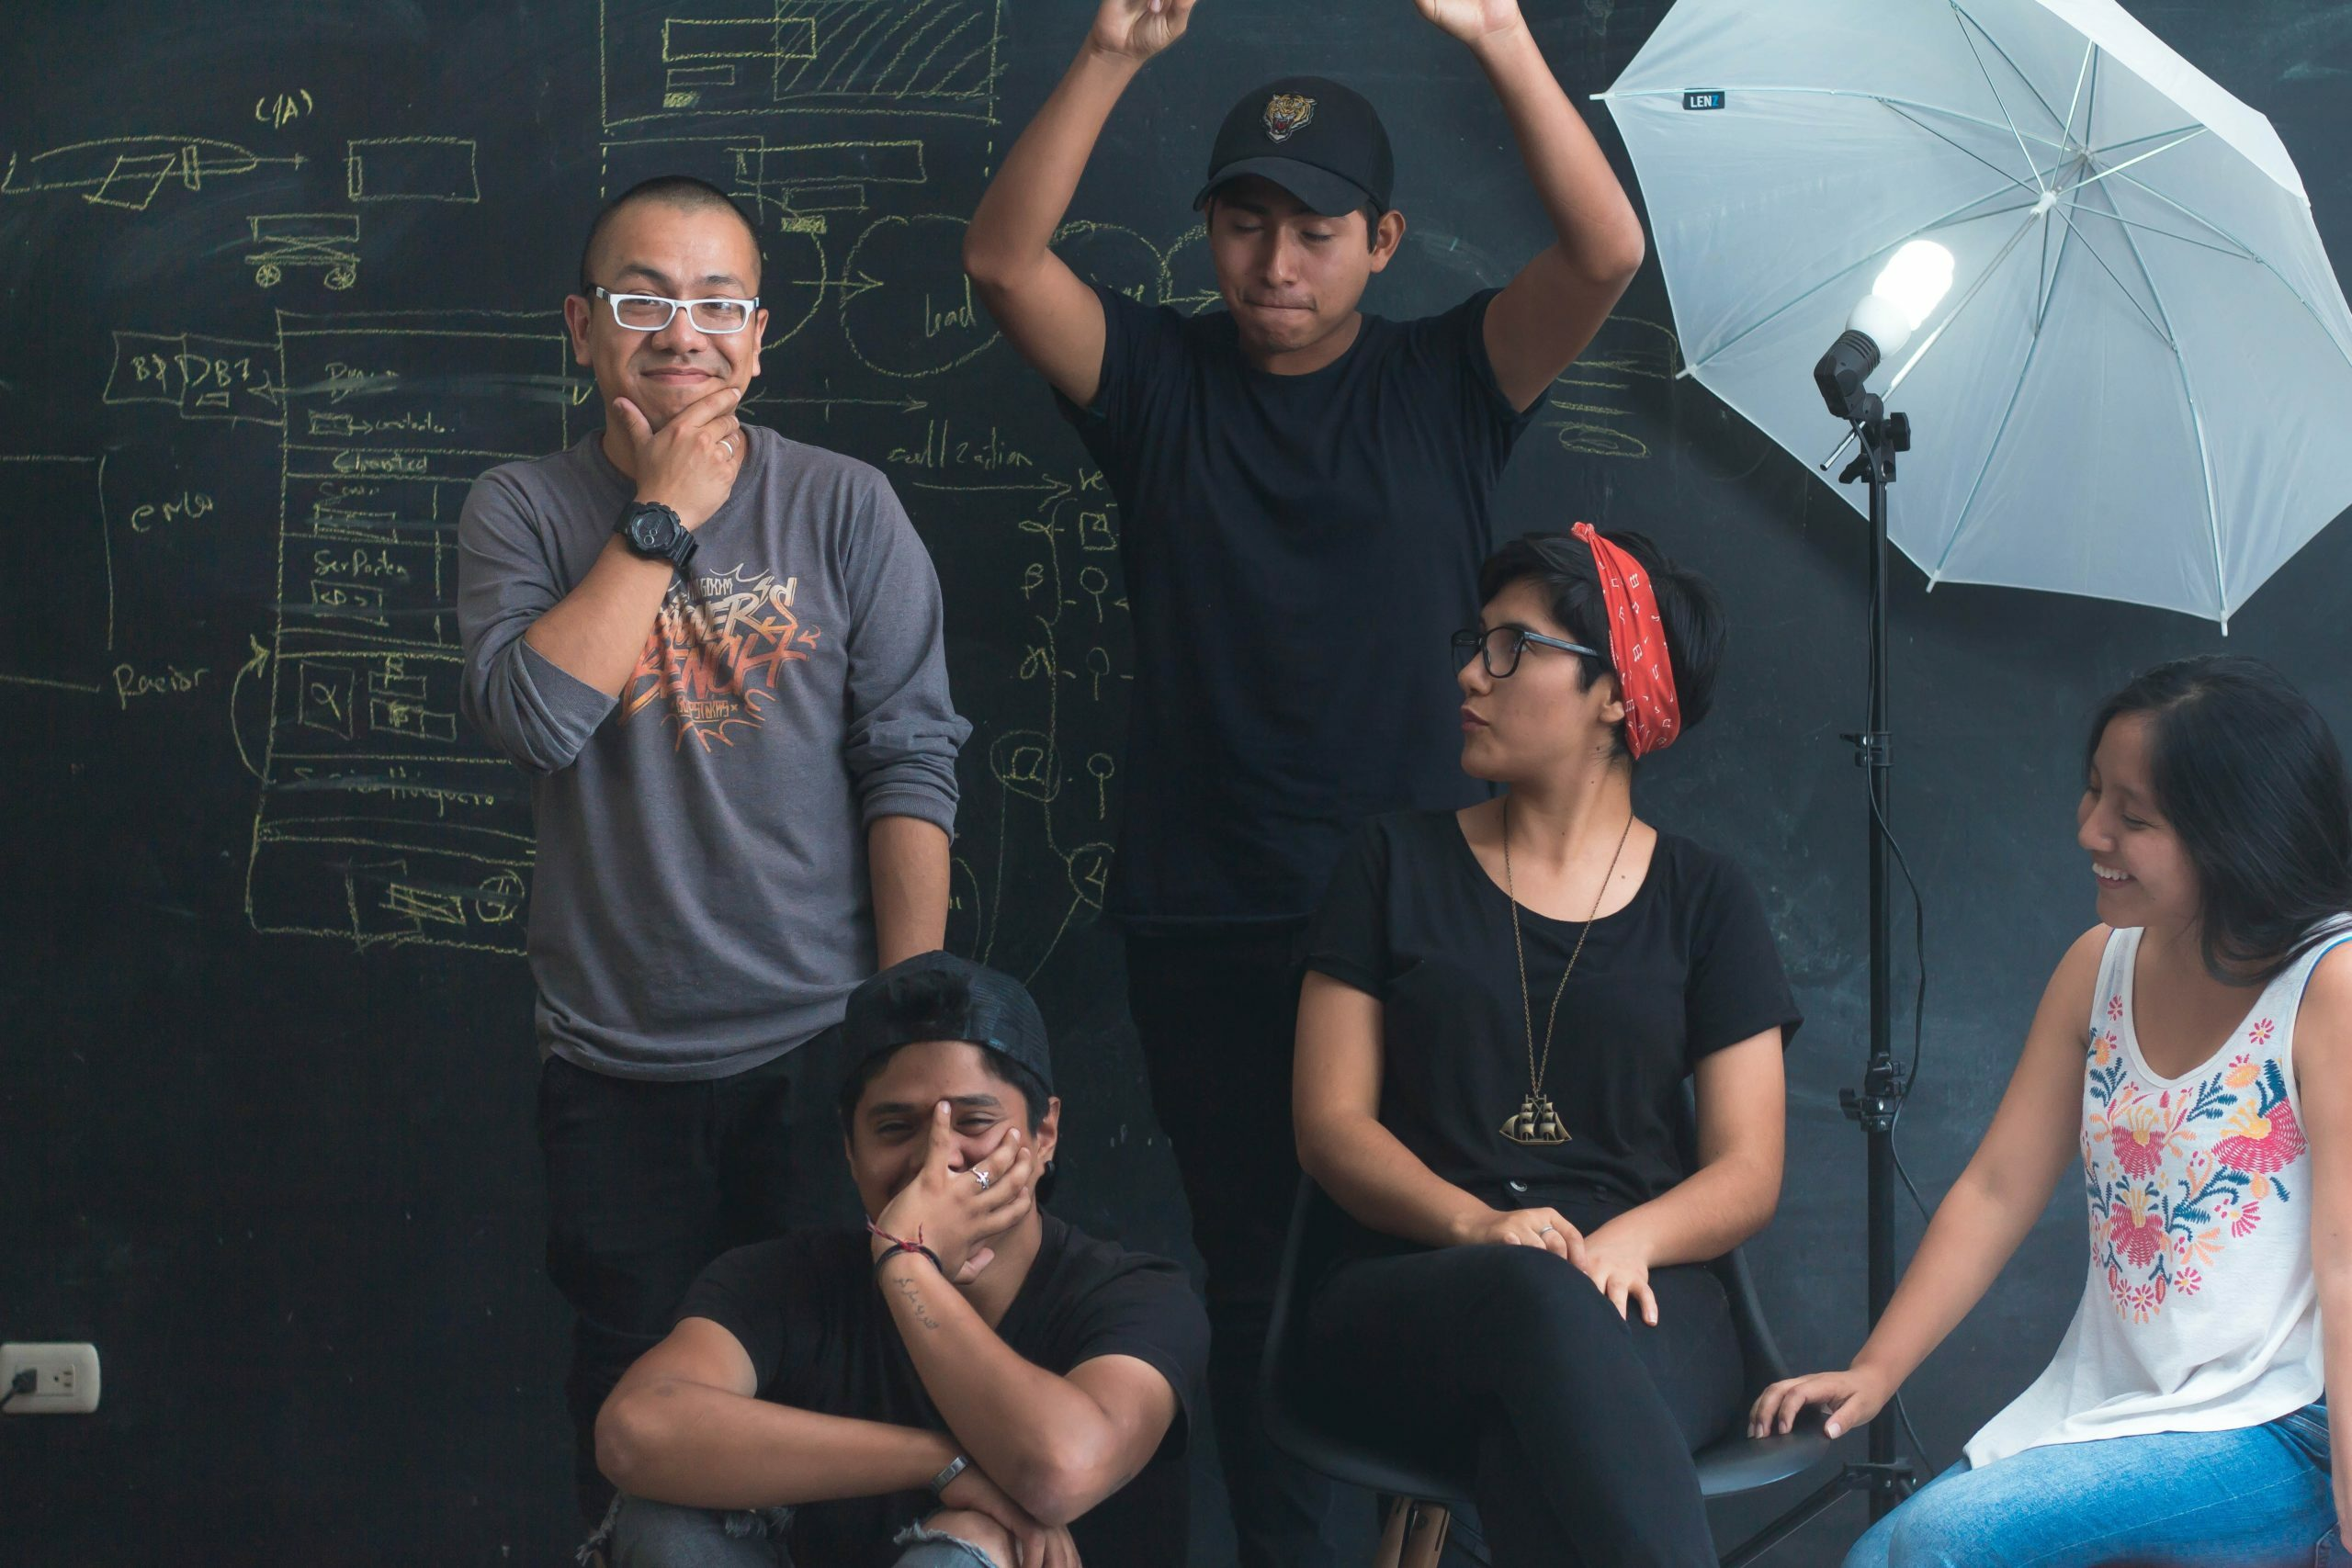 Five people posed in front of a chalkboard